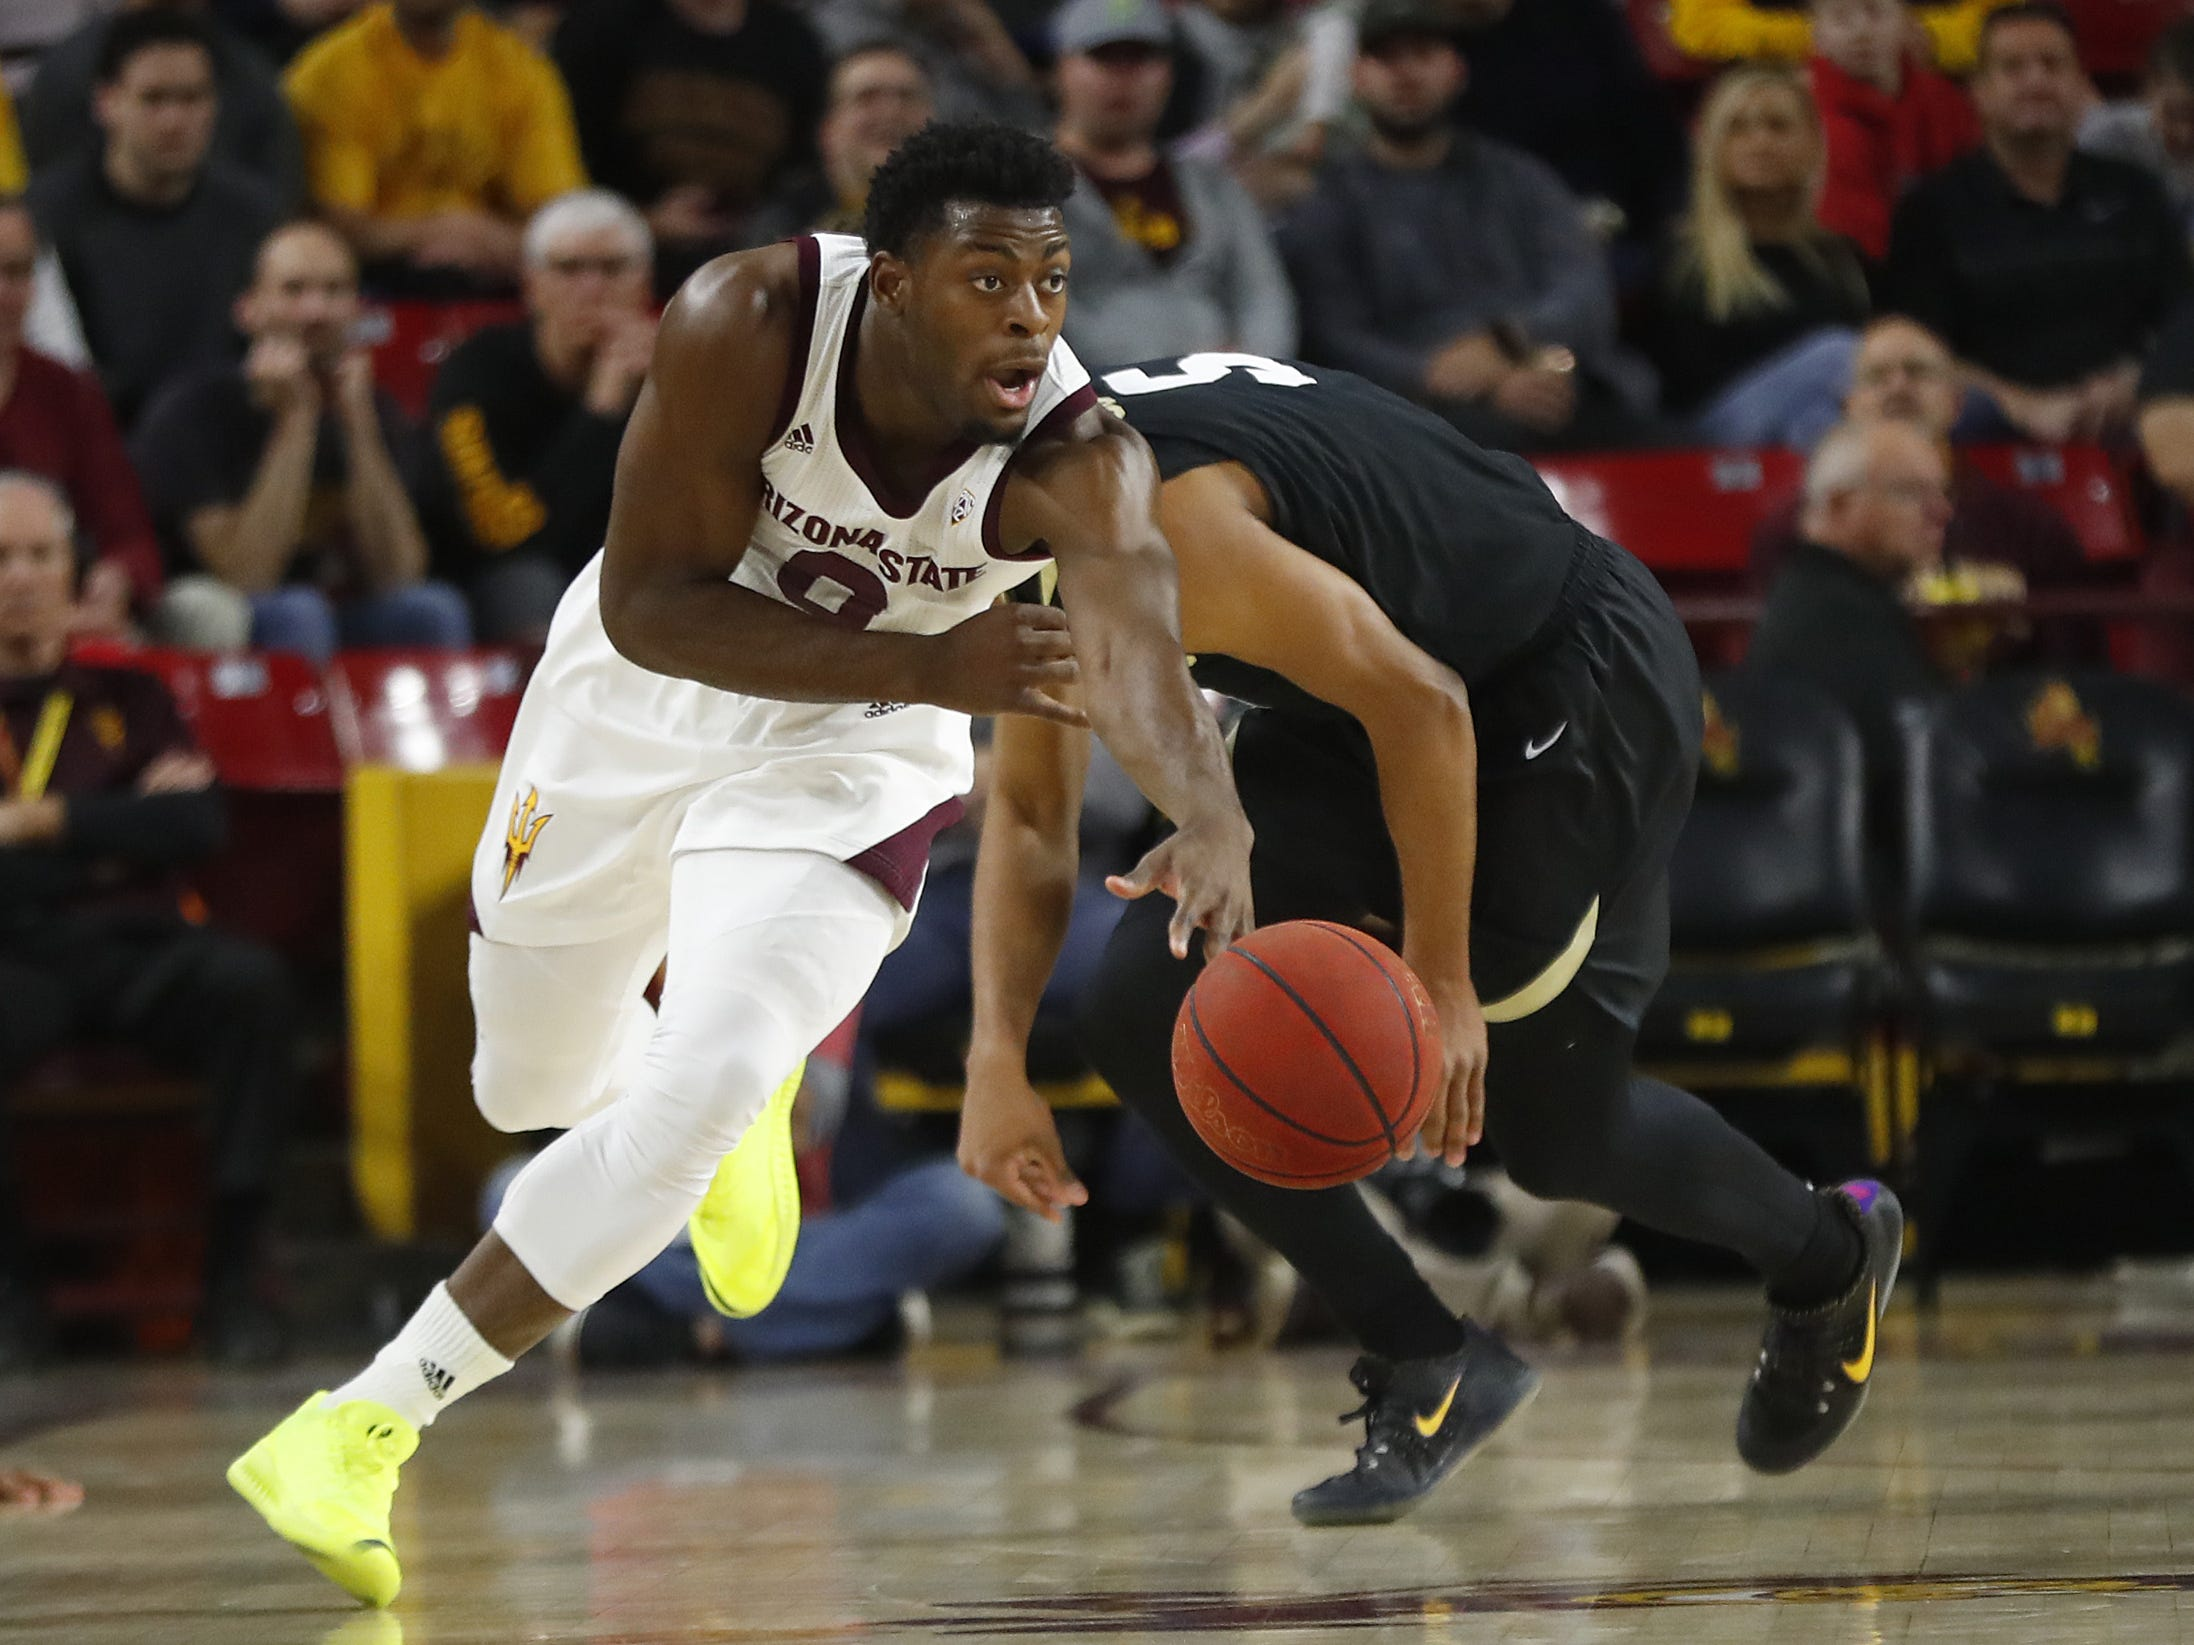 ASU's Luguentz Dort (0) grabs a steal on Colorado's D'Shawn Schwartz (5) during the first half at Wells Fargo Arena in Tempe, Ariz. on January 5, 2019.